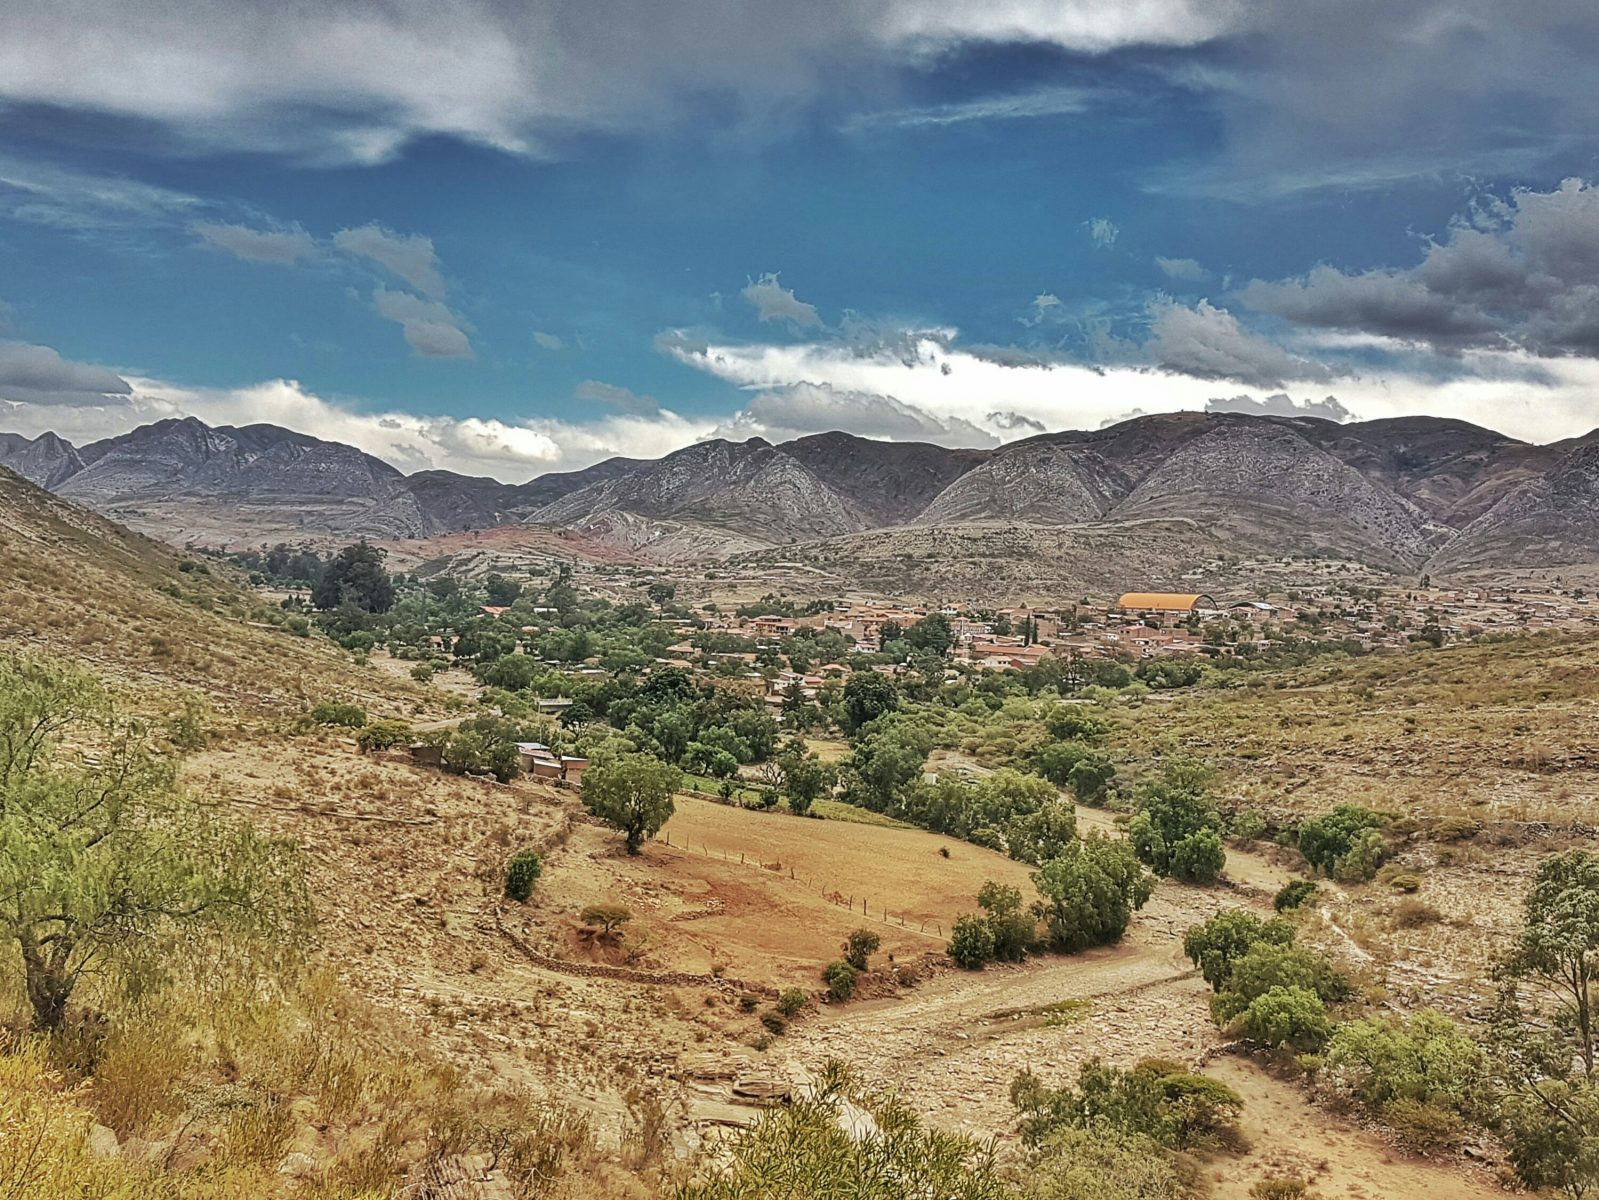 """<img src=""""images/"""" width=""""800"""" height=""""600"""" alt=""""torotoro - 20171118 130825 01122418078 - Bolivia: A Simple Guide To The Tours ofTorotoro National Park"""">"""